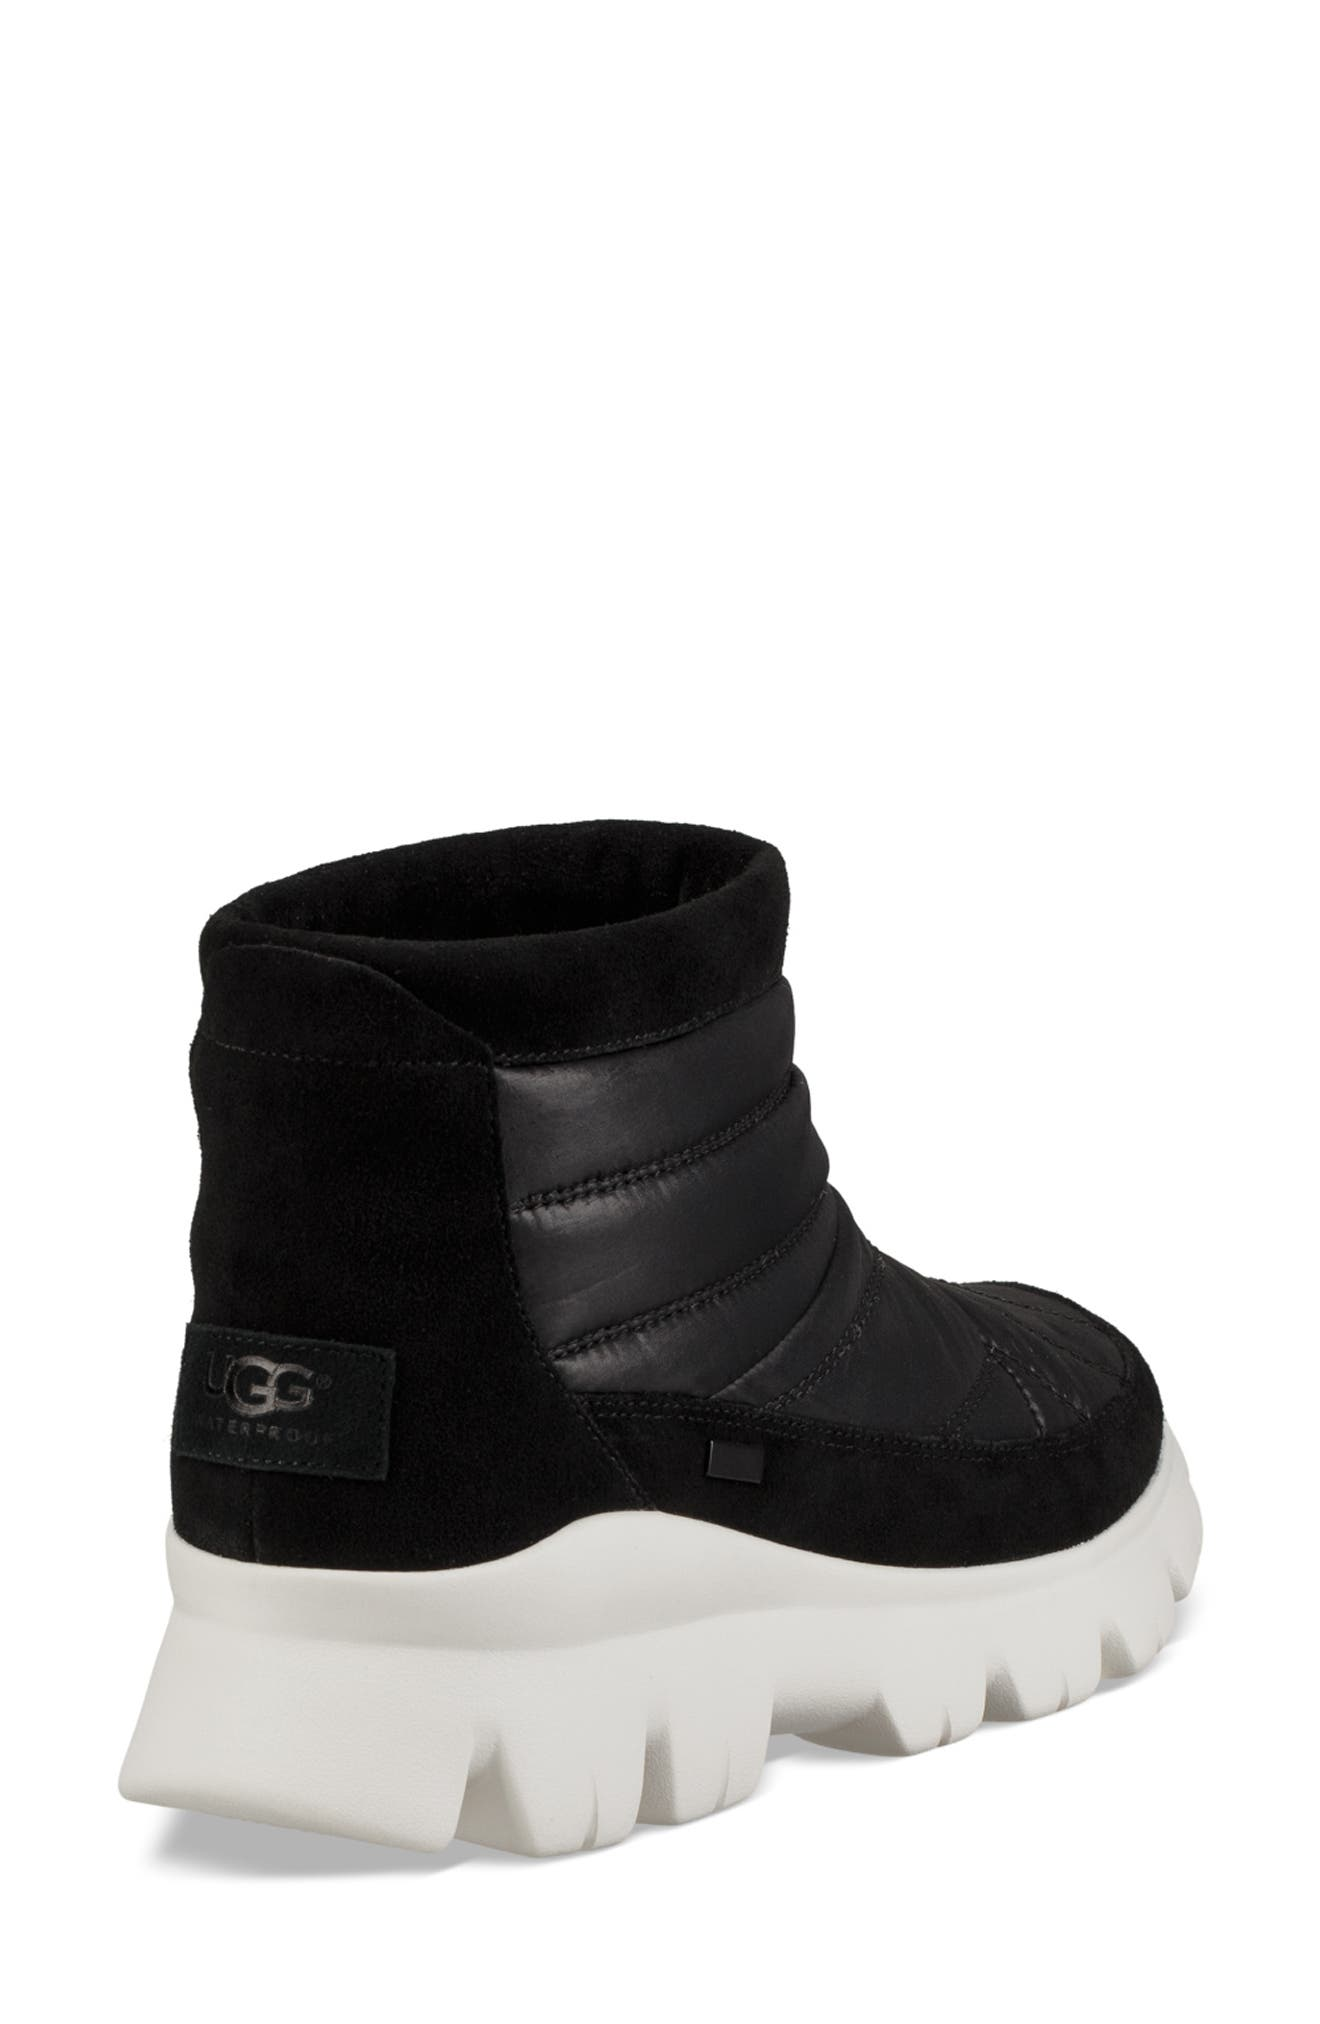 Centara Water Resistant Quilted Bootie,                             Alternate thumbnail 2, color,                             BLACK